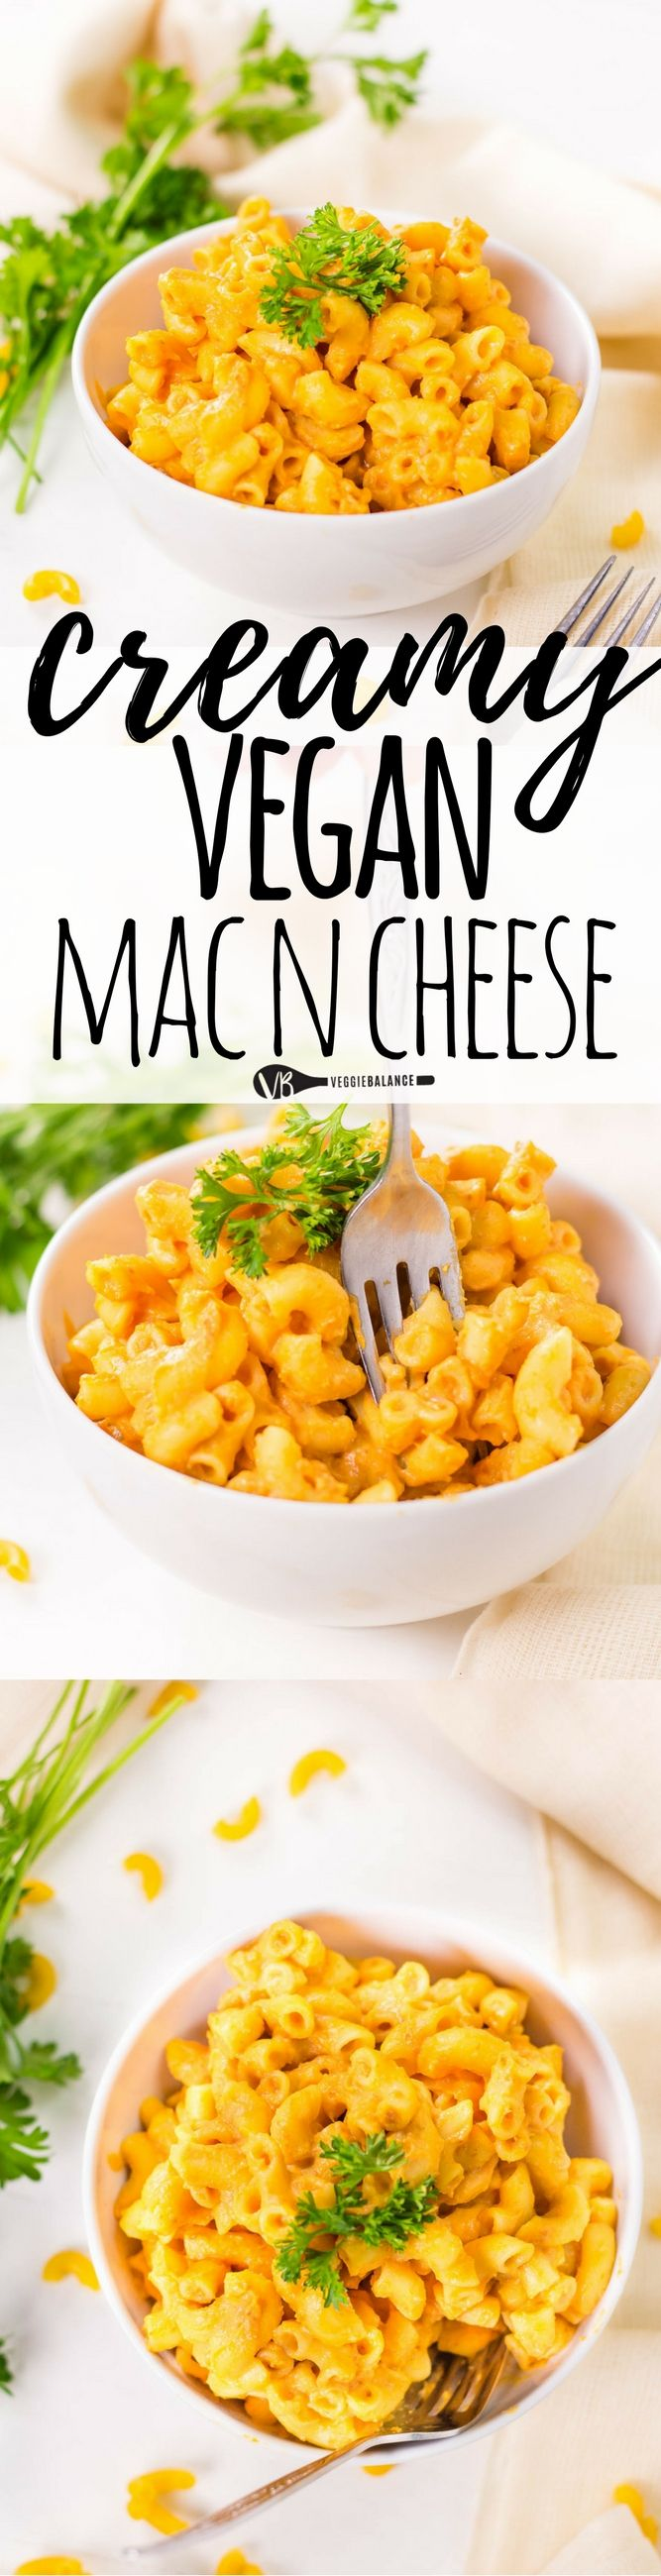 Creamy Vegan Mac and Cheese (Dairy-Free) - Veggie Balance